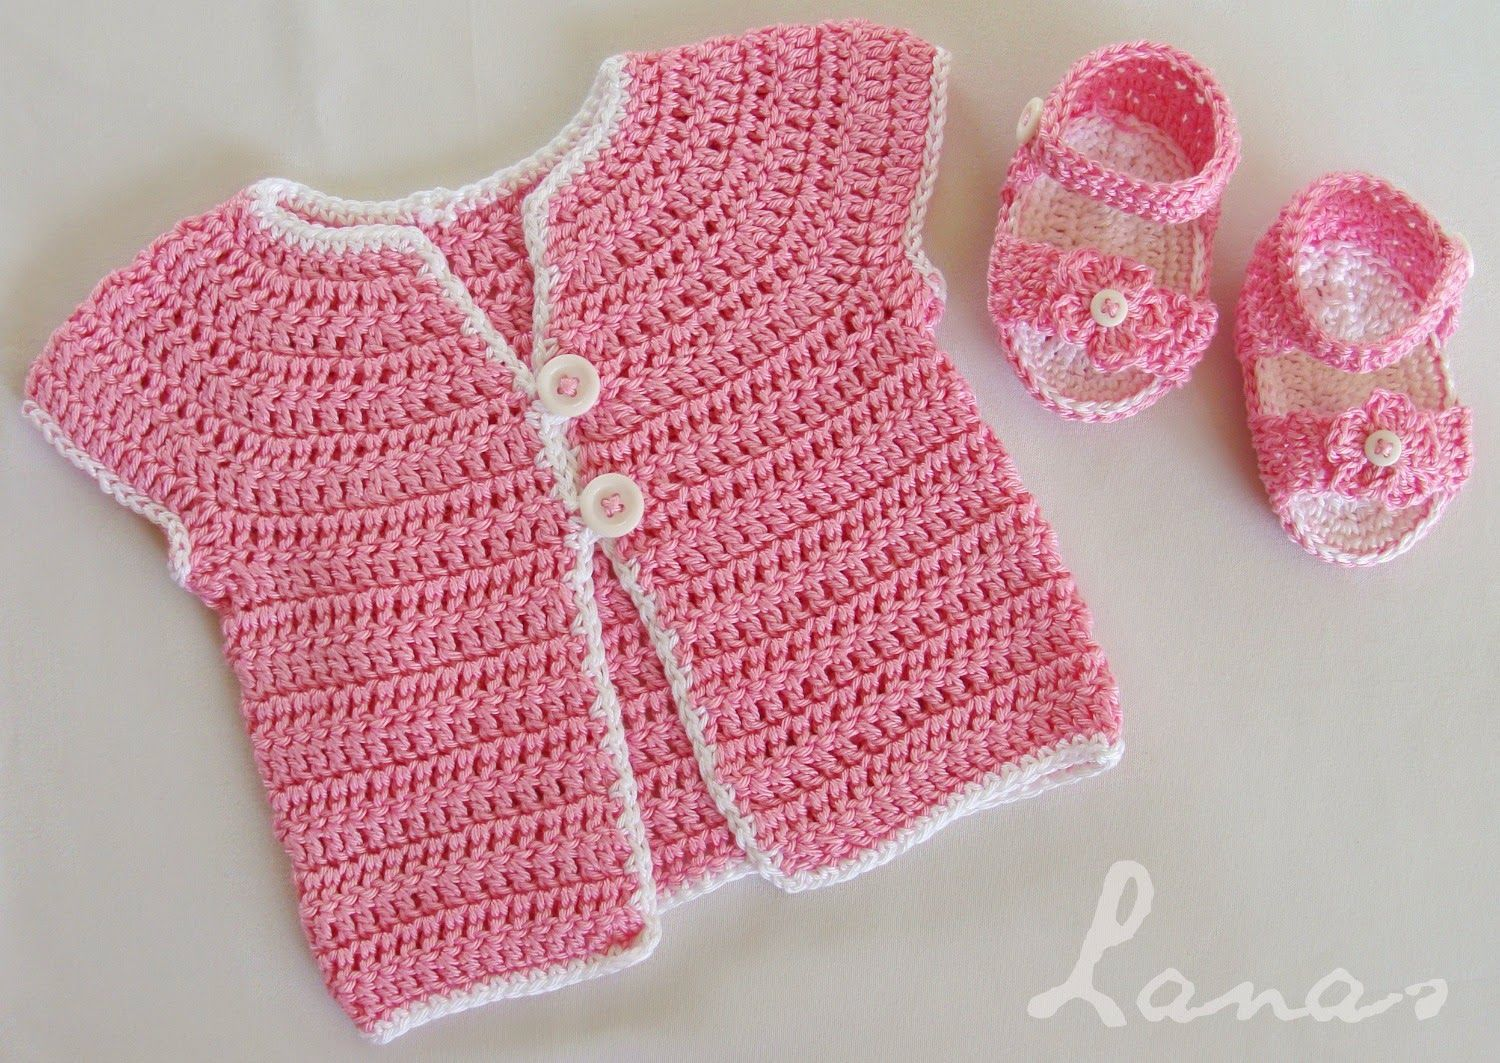 a sleeve-less cardigan and sandals by Lanas de Ana - #crochet